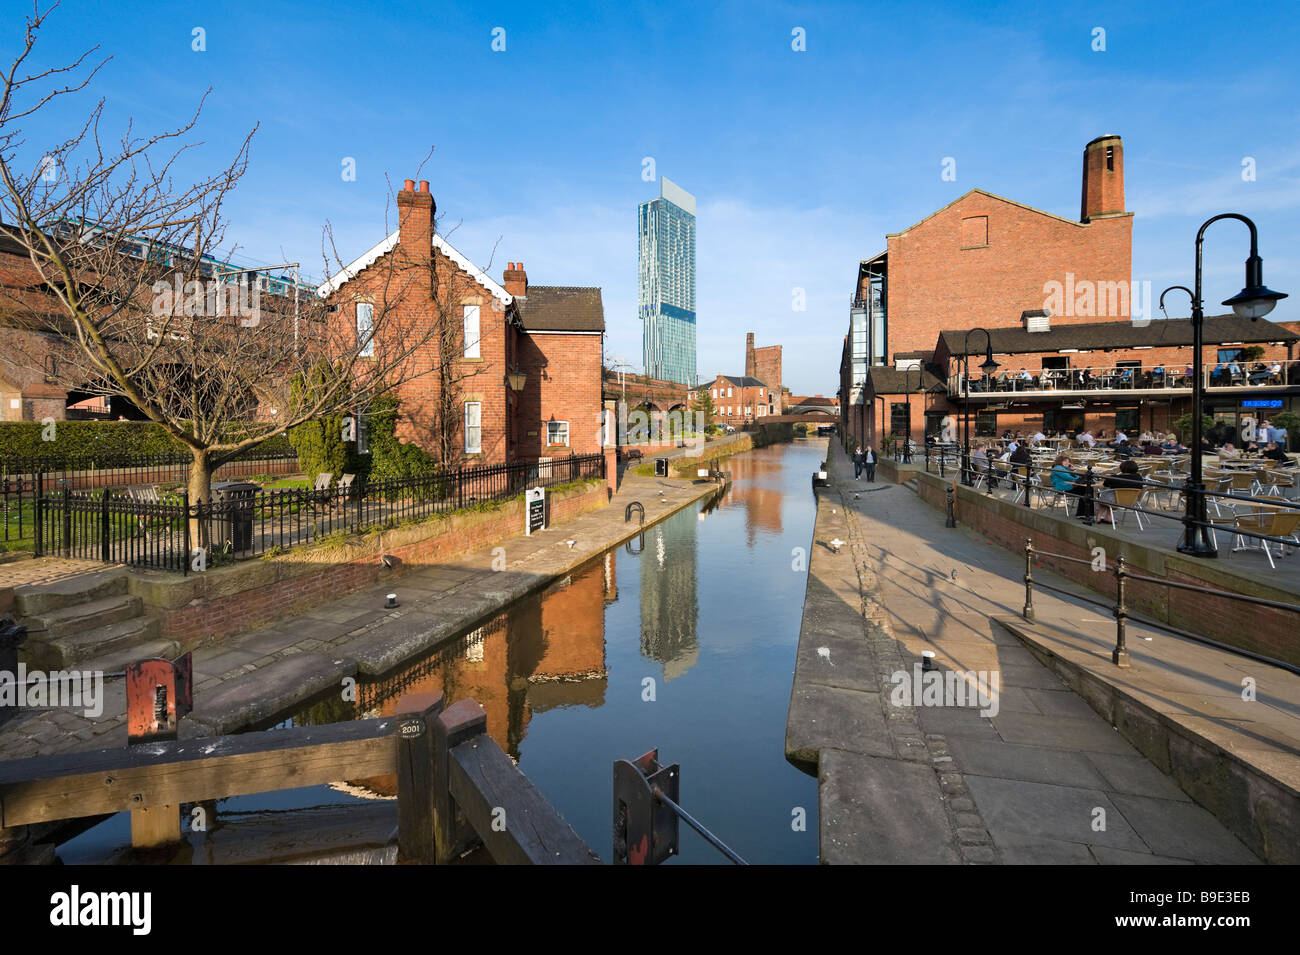 Cafe and bar in the redeveloped canalside area of Castlefield with the Beameth Tower in the distance, Manchester, - Stock Image